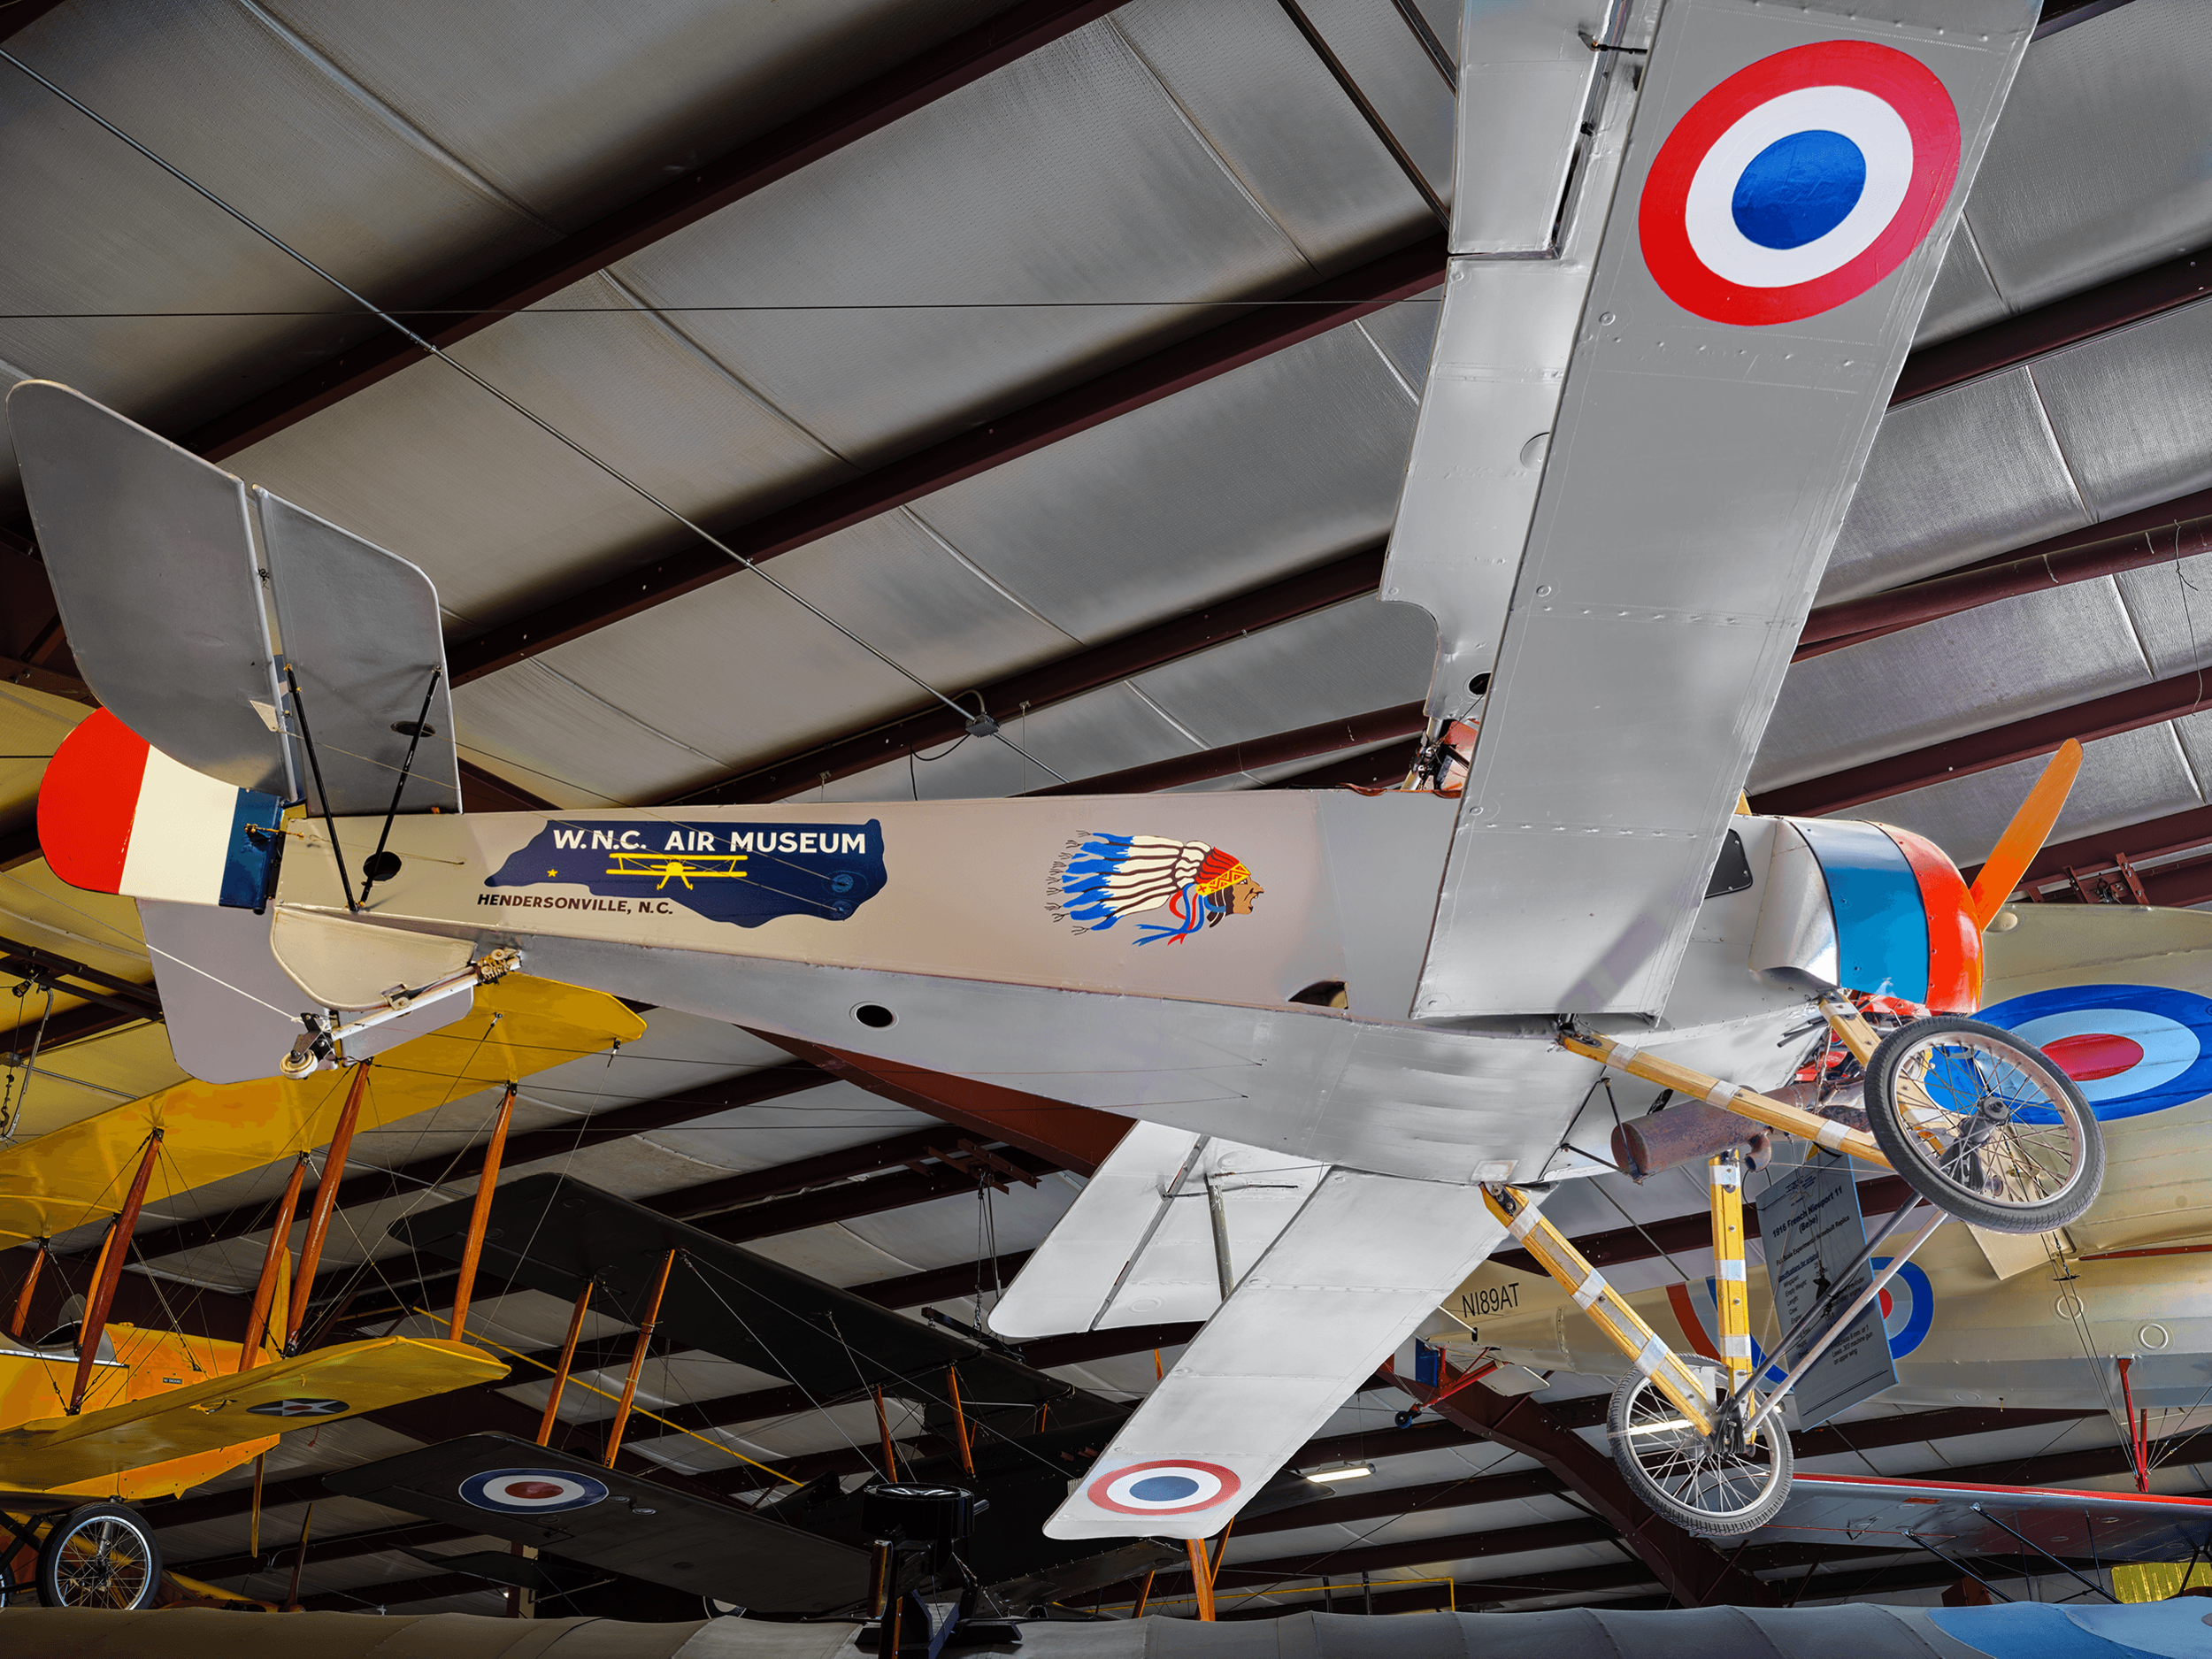 The  1915 Nieuport 11  was one of the first real allied fighters of WWI and featured an 80hp LeRhone rotary engine that spins with the propeller - state of the art in the early 1900s but very unusual today.